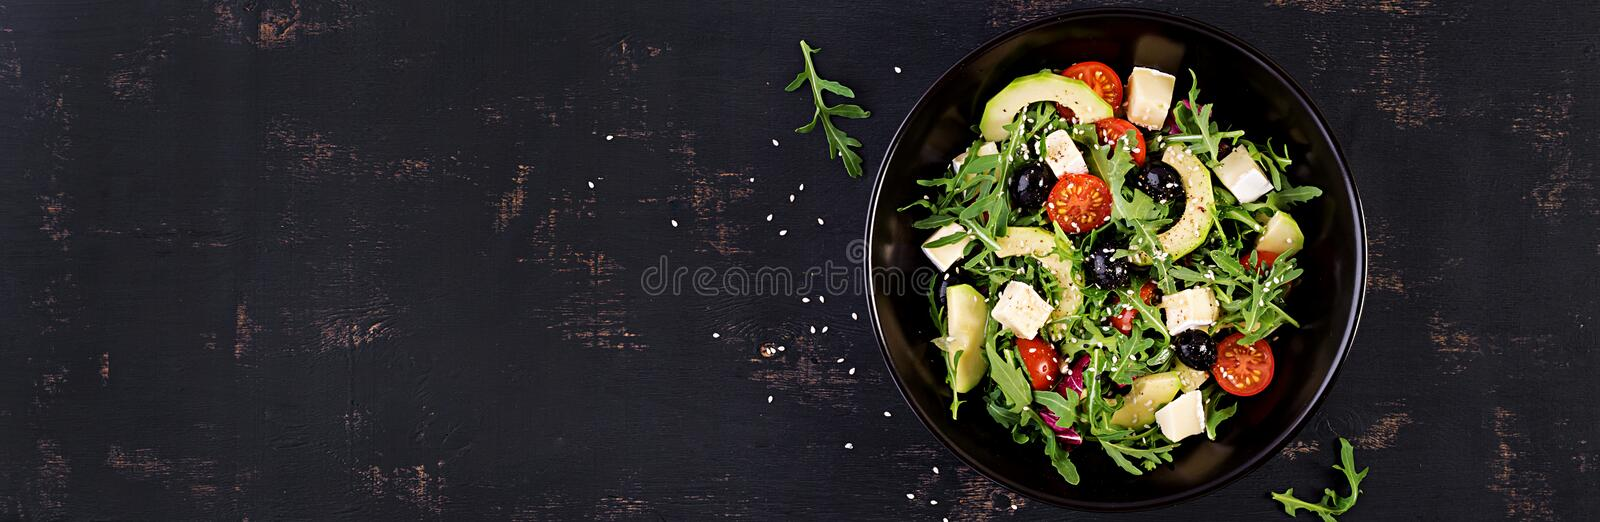 Green salad with sliced avocado, cherry tomatoes, black olives and cheese. Healthy diet vegetarian summer vegetable salad. Table setting. Food concept. Banner stock photos